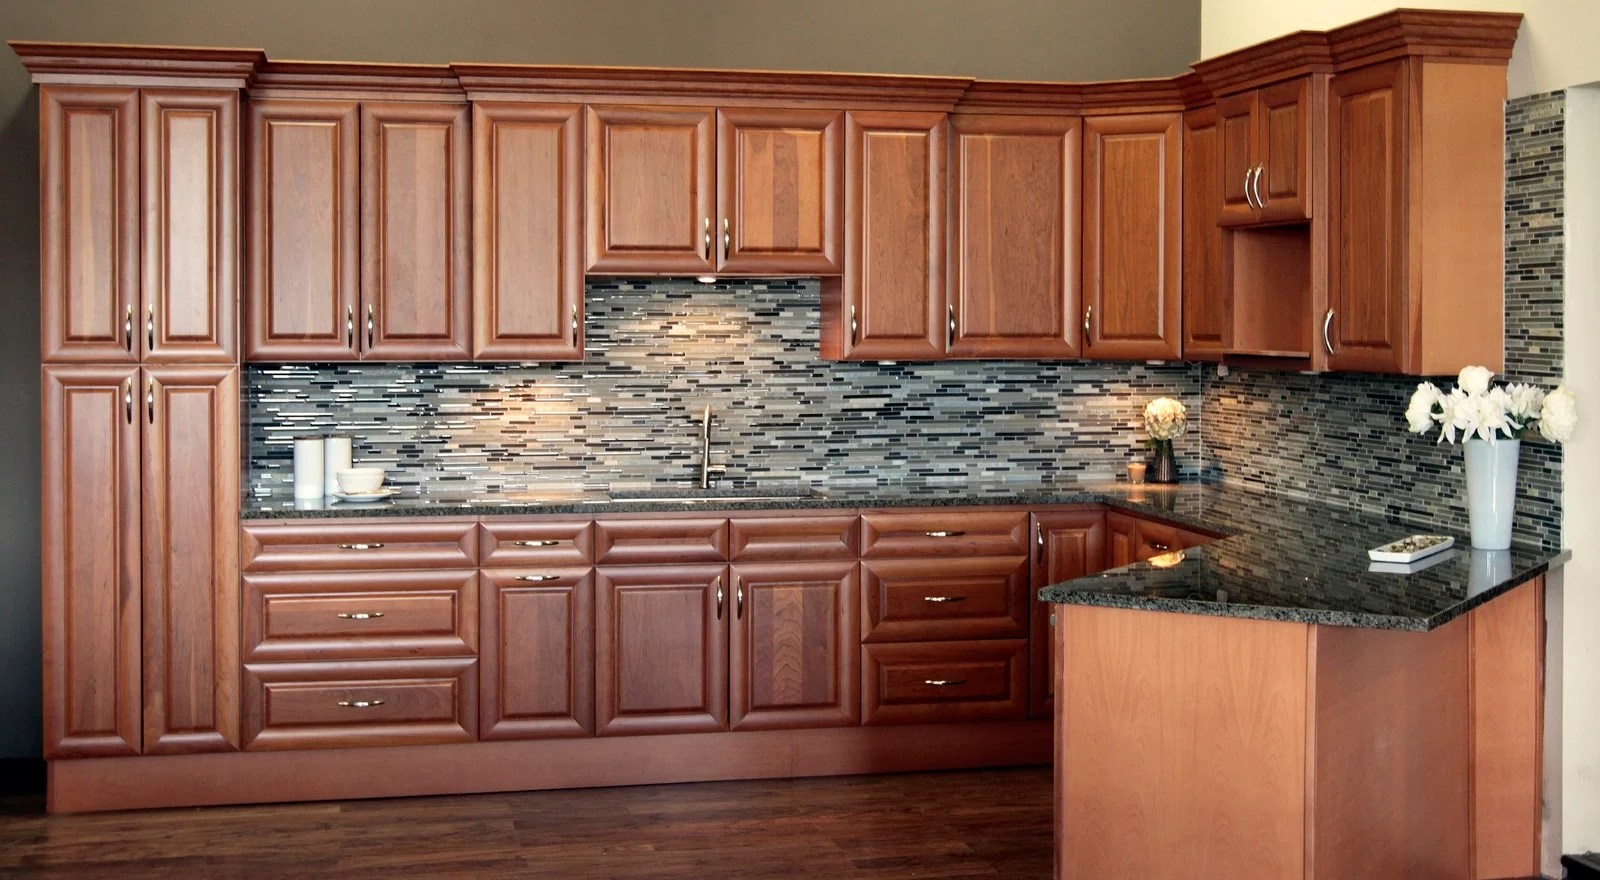 Best Kitchen Gallery: Natural American Cherry Raised Panel Pius Kitchen Bath of Raised Panel Kitchen Cabinet Doors on cal-ite.com